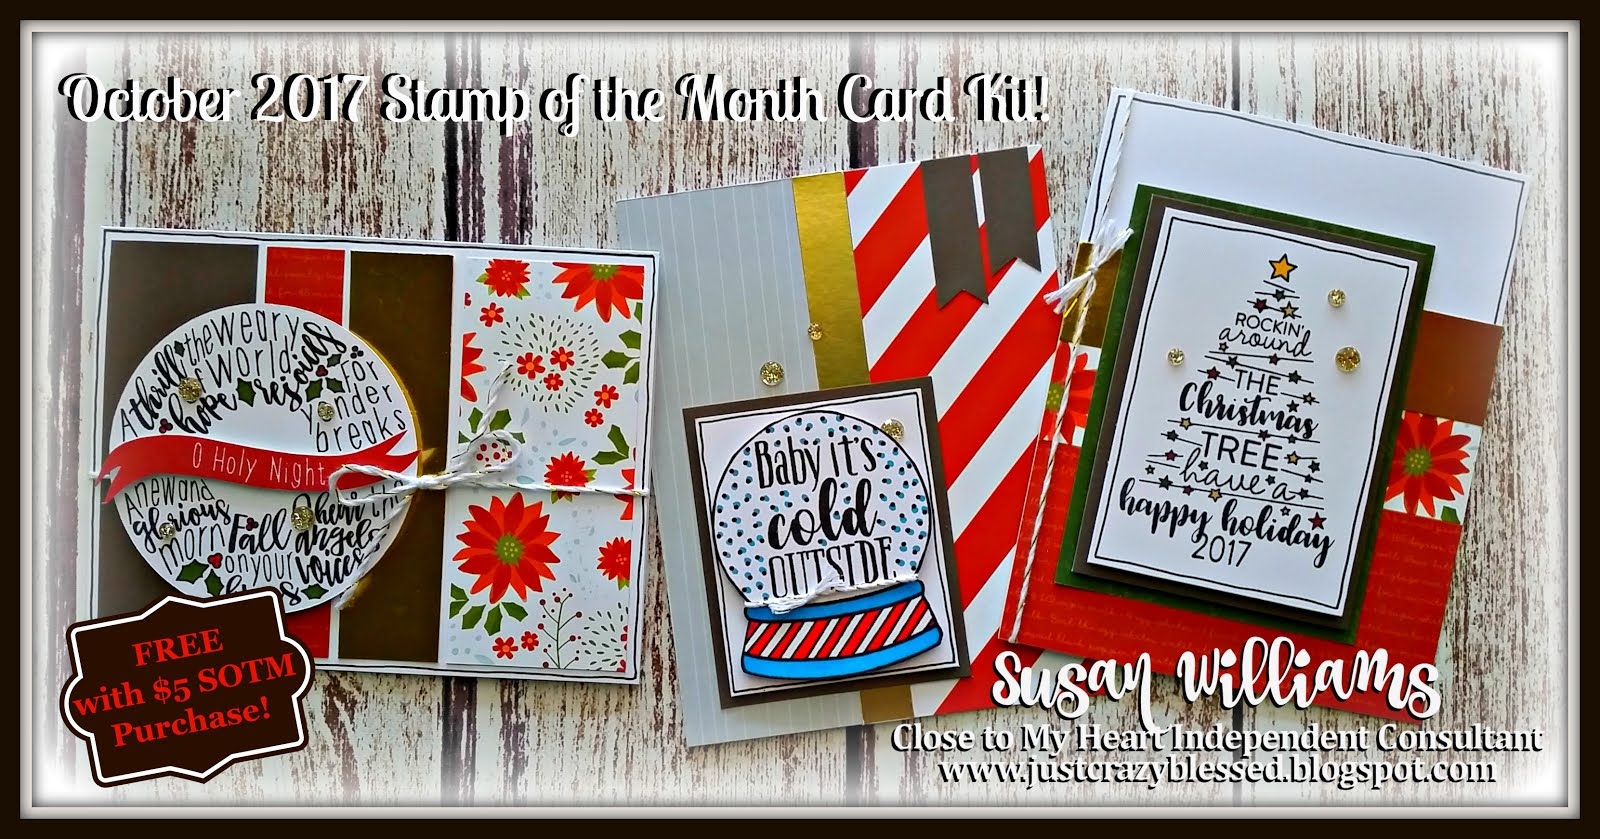 October Stamp of the Month (72) Card Workshop!